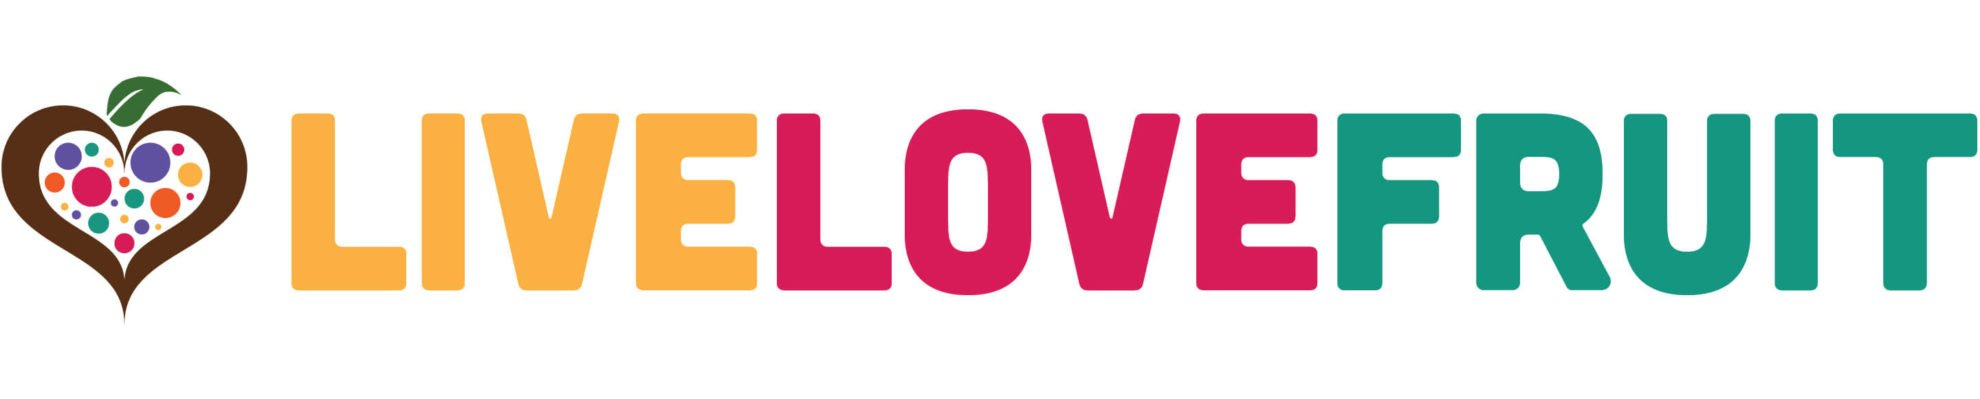 live love fruit logo